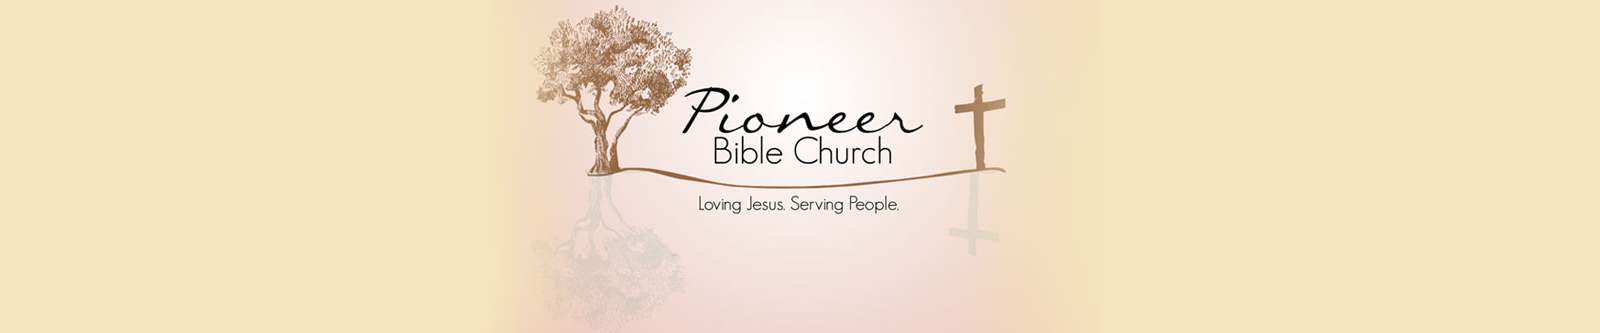 Pioneer Bible Church